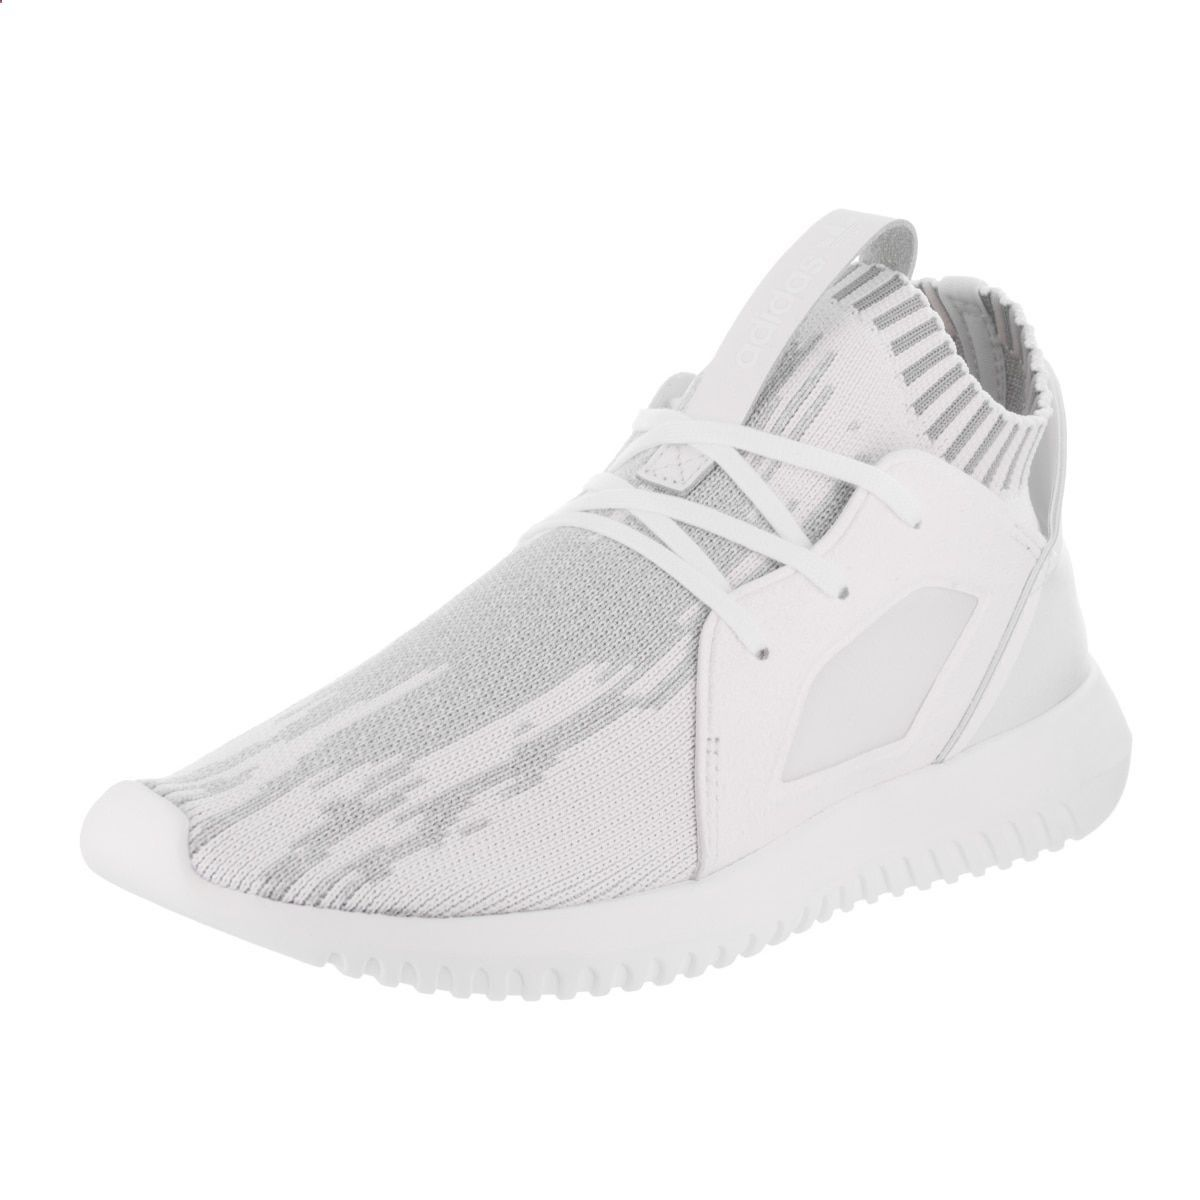 cheaper e177d 1b20c Adidas Womens Tubular Defiant PK W Originals Running Shoe